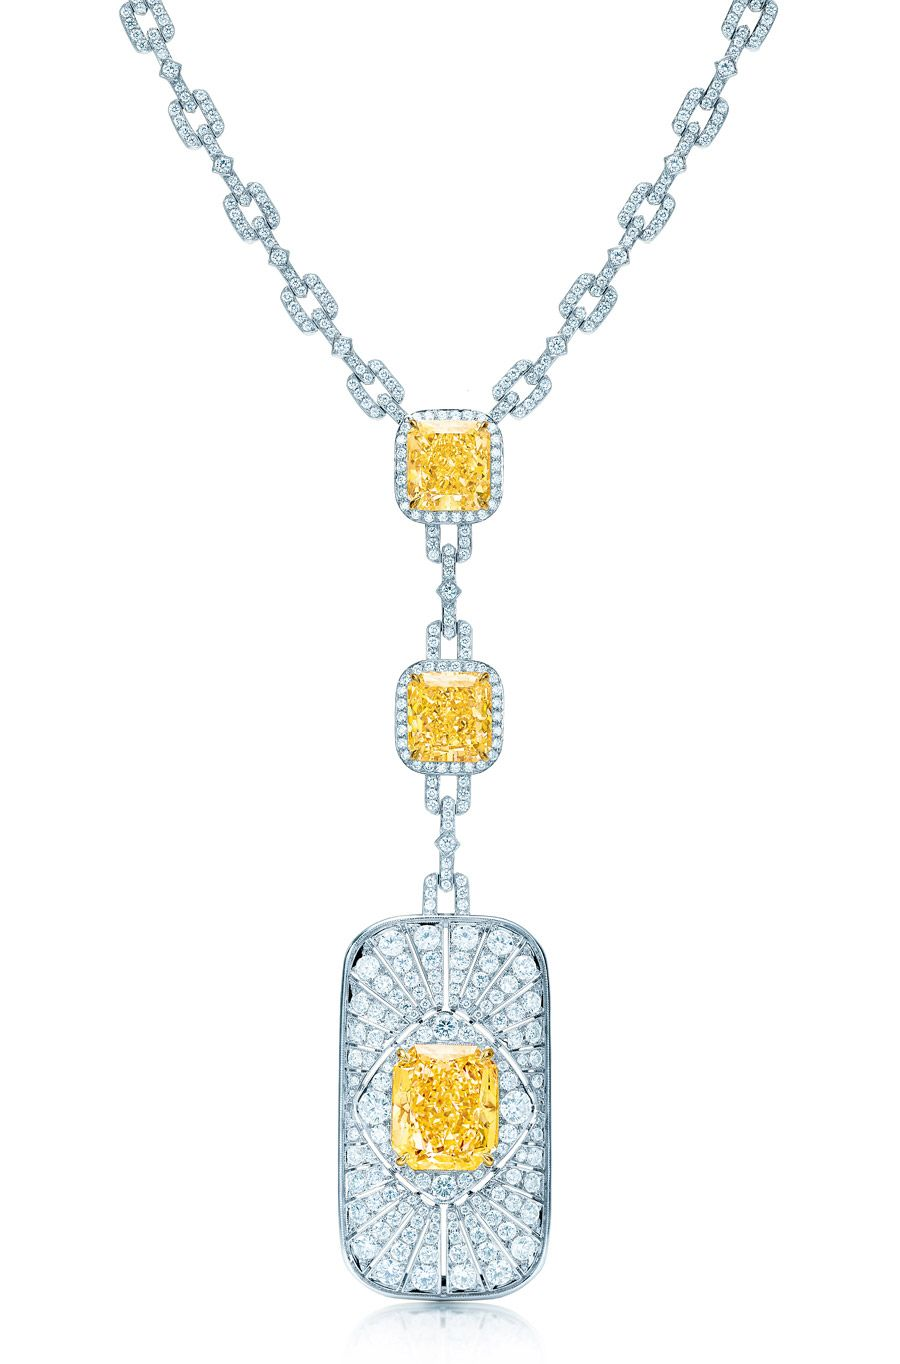 Halpern's Art-Deco inspired necklace in platinum based on jewels in the Tiffany archives.